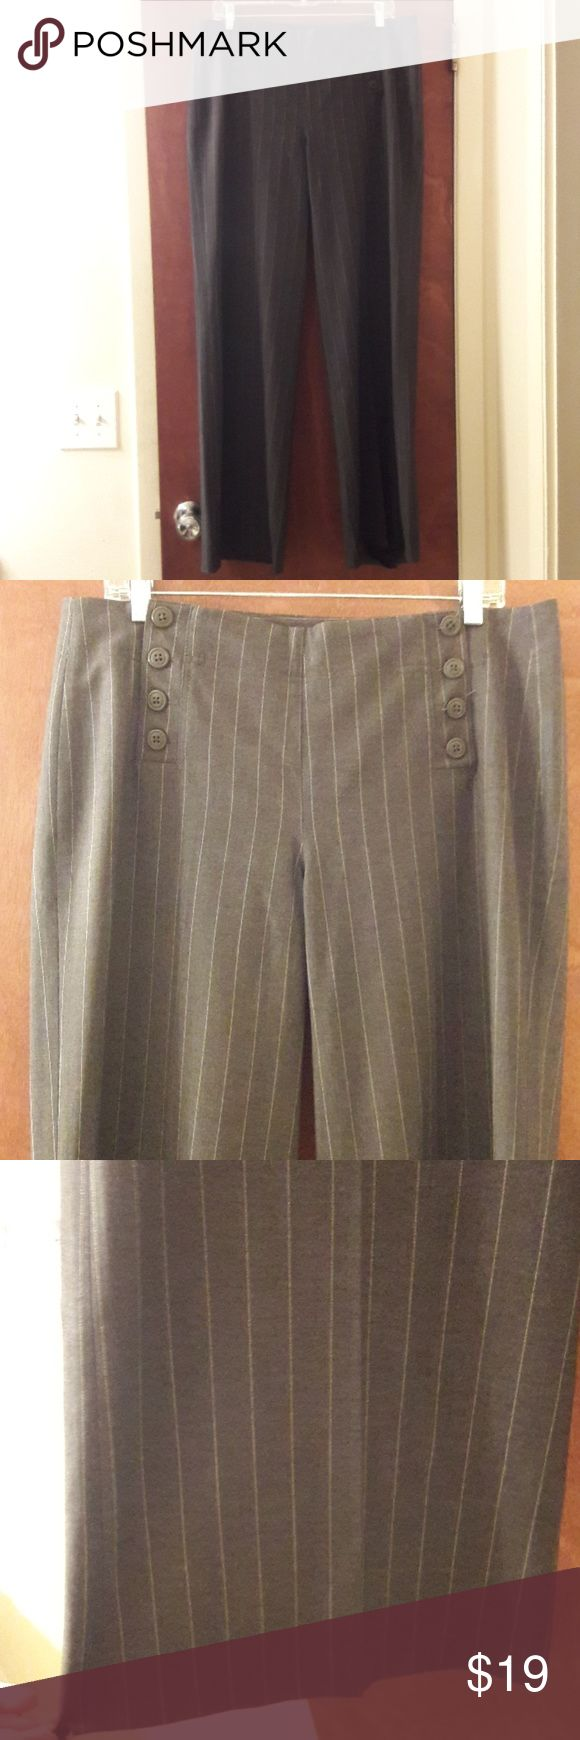 """Gray Larry Levine Stretch Dress Pants Stripped 12 Larry Levine Stretch Dress Pants.  Size 12.  They are gray with white stripes. Inseam measures 32 1/2"""".  Legs are wide and flowy. New with out tags! Larry Levine Pants Wide Leg"""